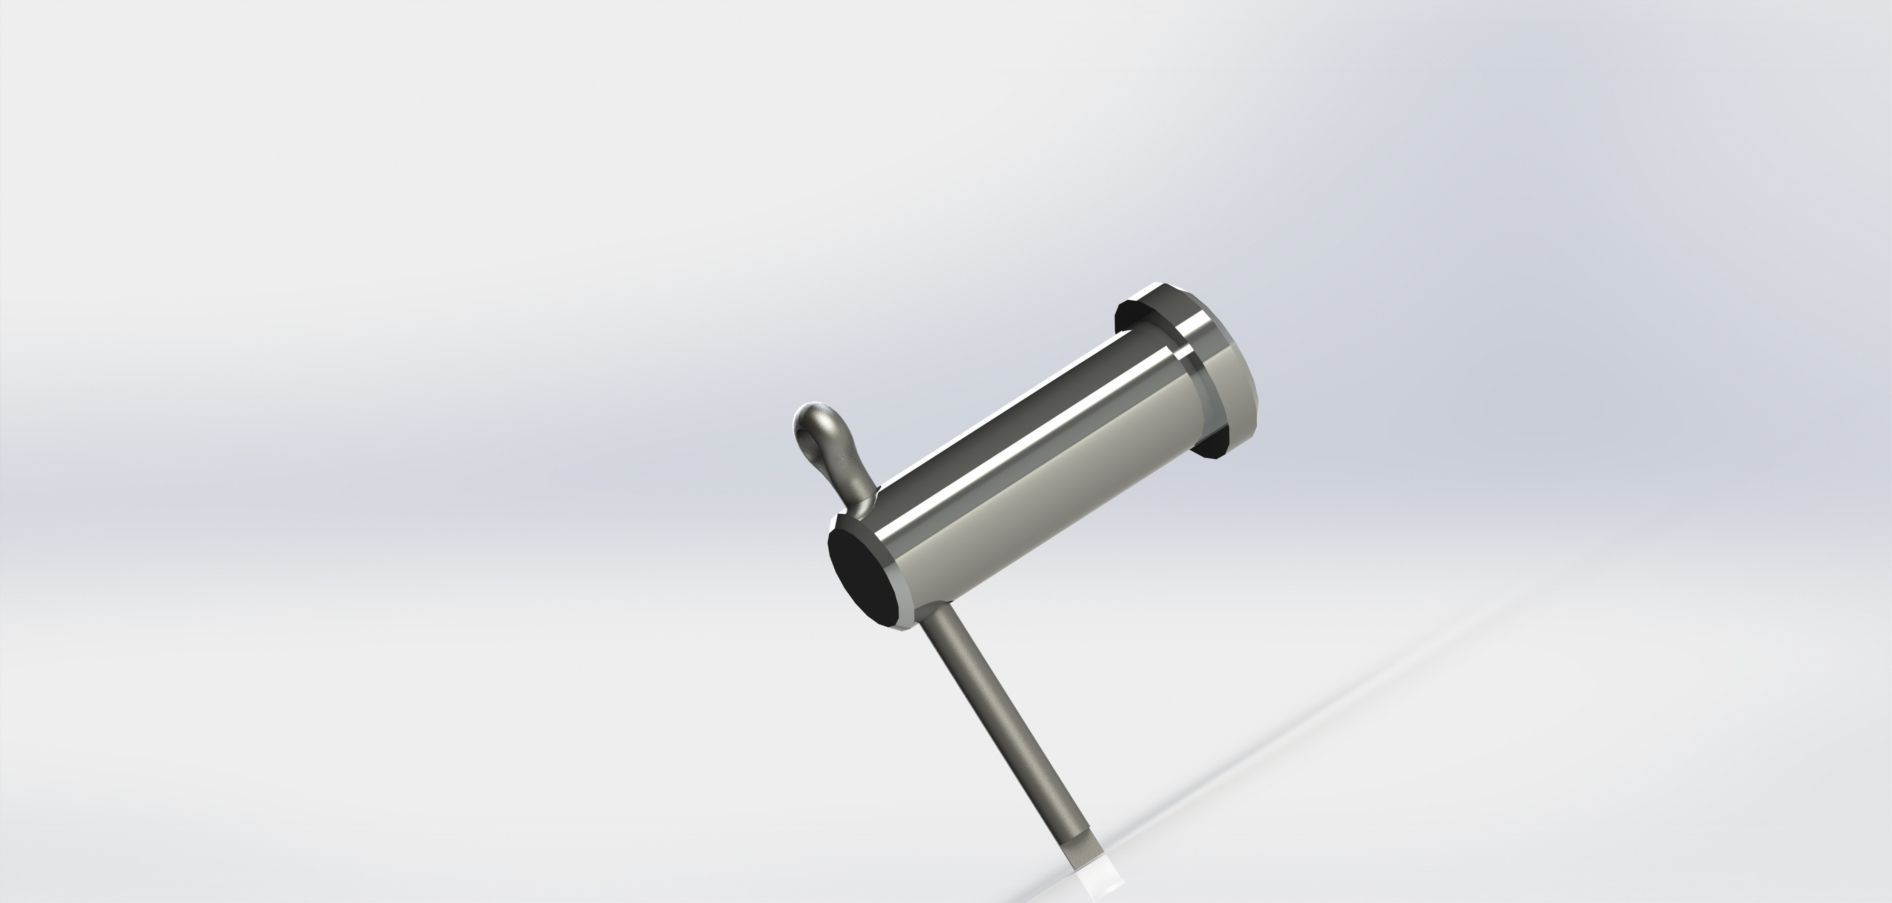 Clevis Pin With Cotter : Clevis pin with cotter free d model cgtrader